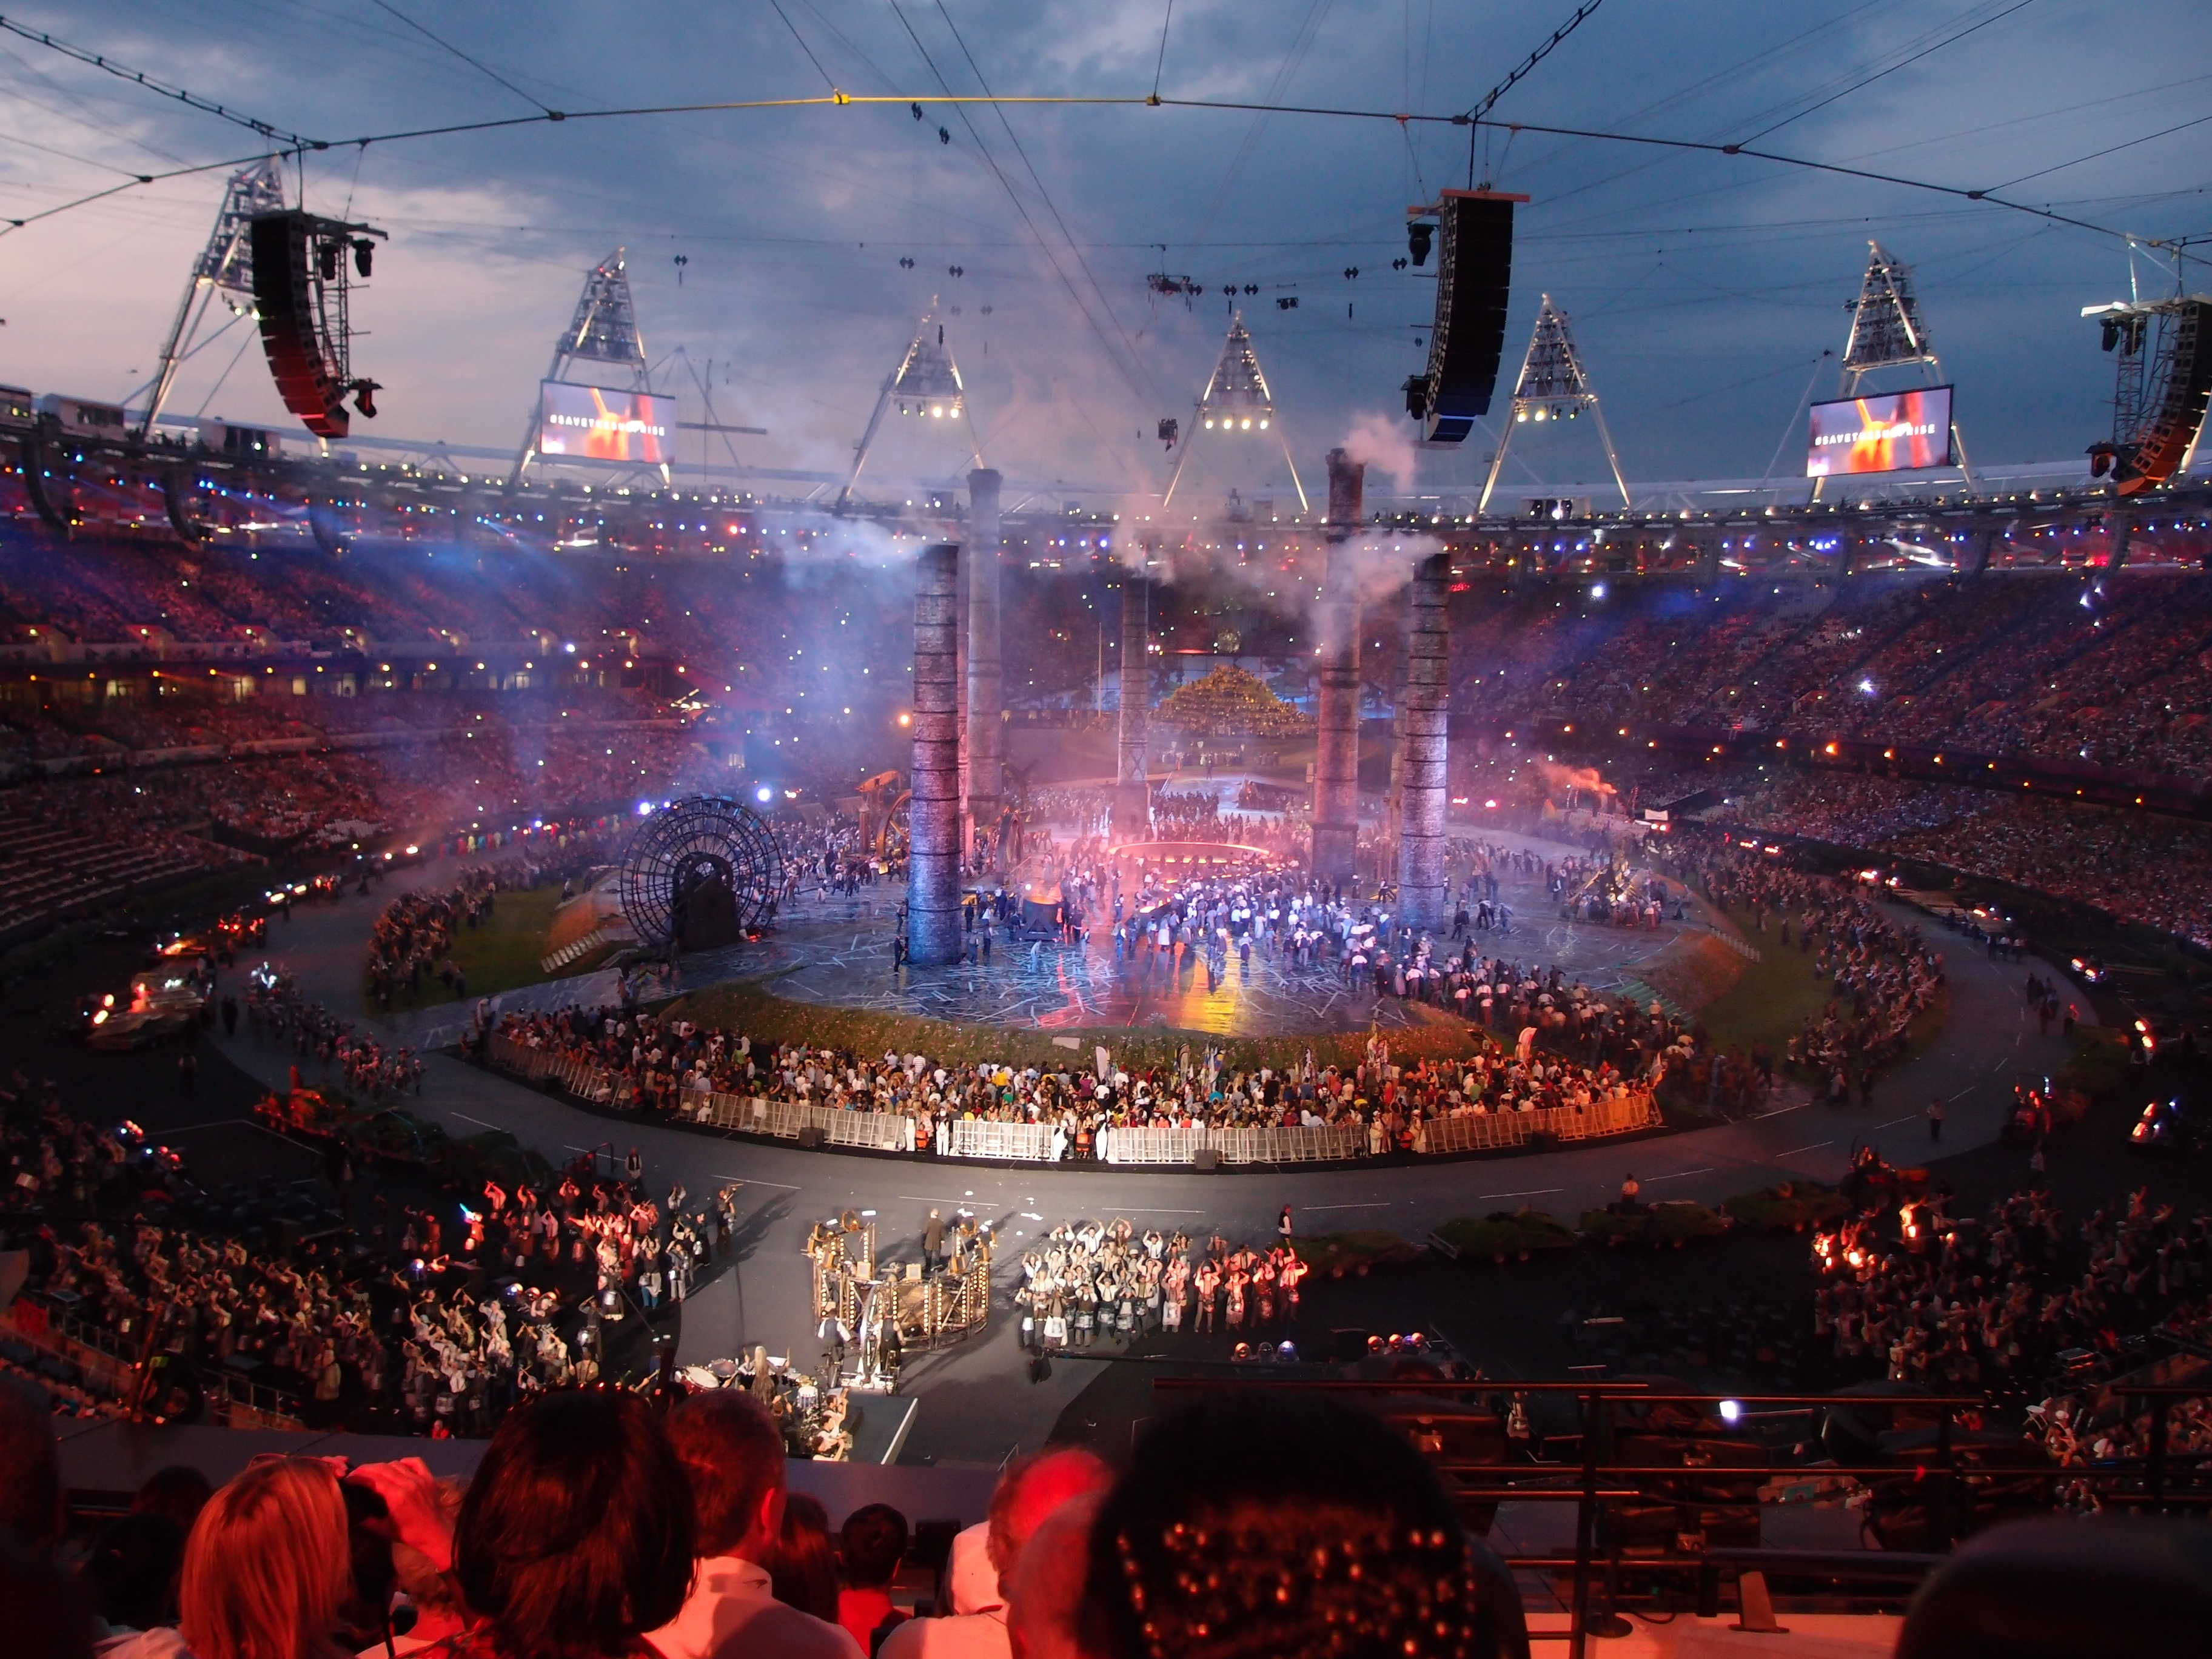 National Flag and Display has been selected to produce the Protocol Flags for the London 2012 Olympic Opening Ceremonies!